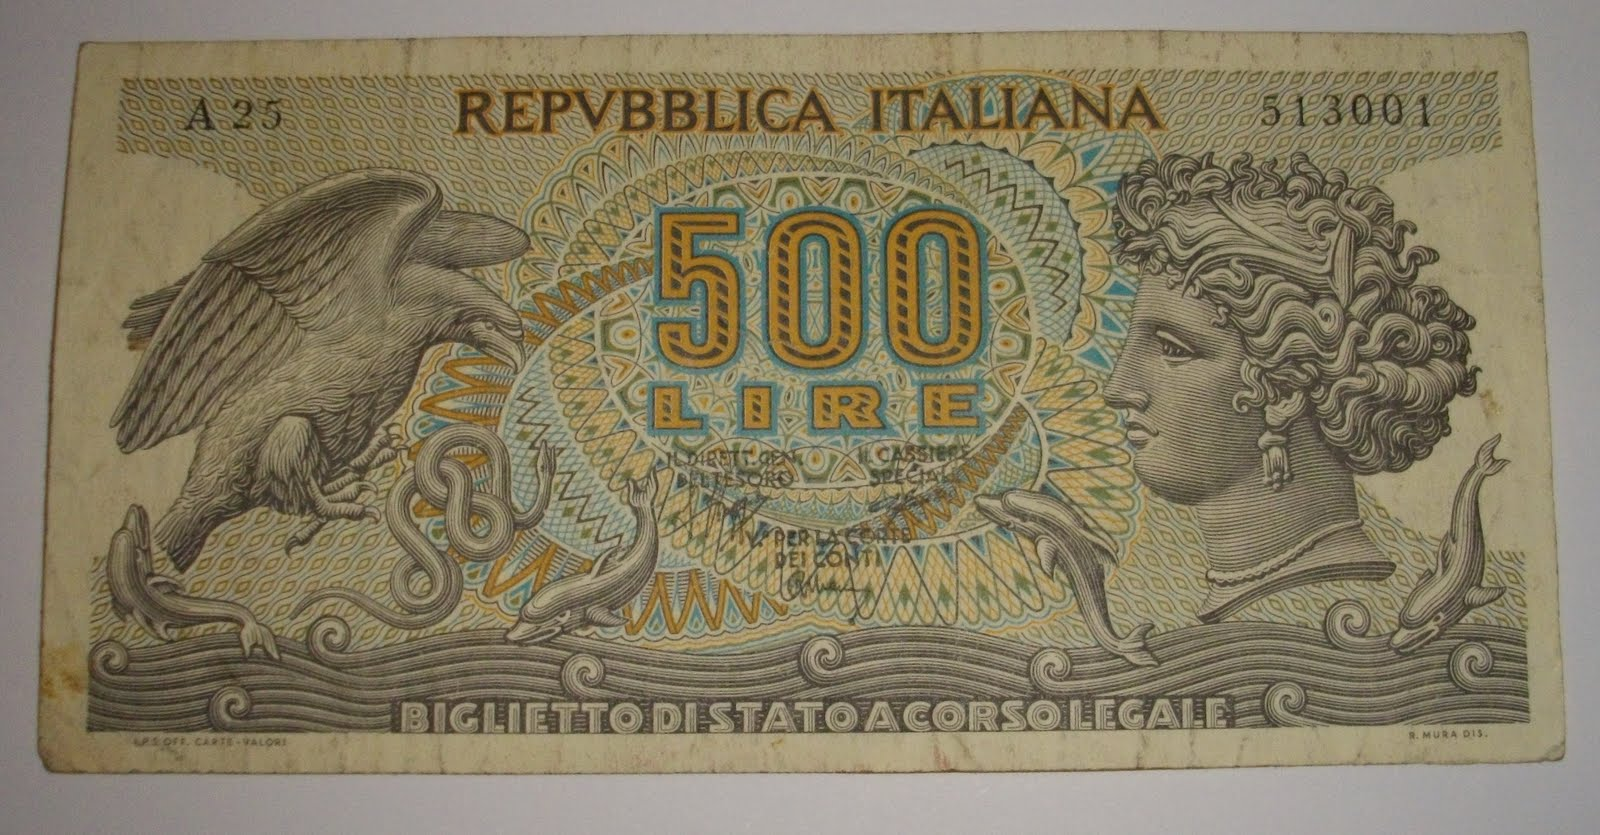 Indonesia Collectors Antique Repvbblica Italiana 500 Lire